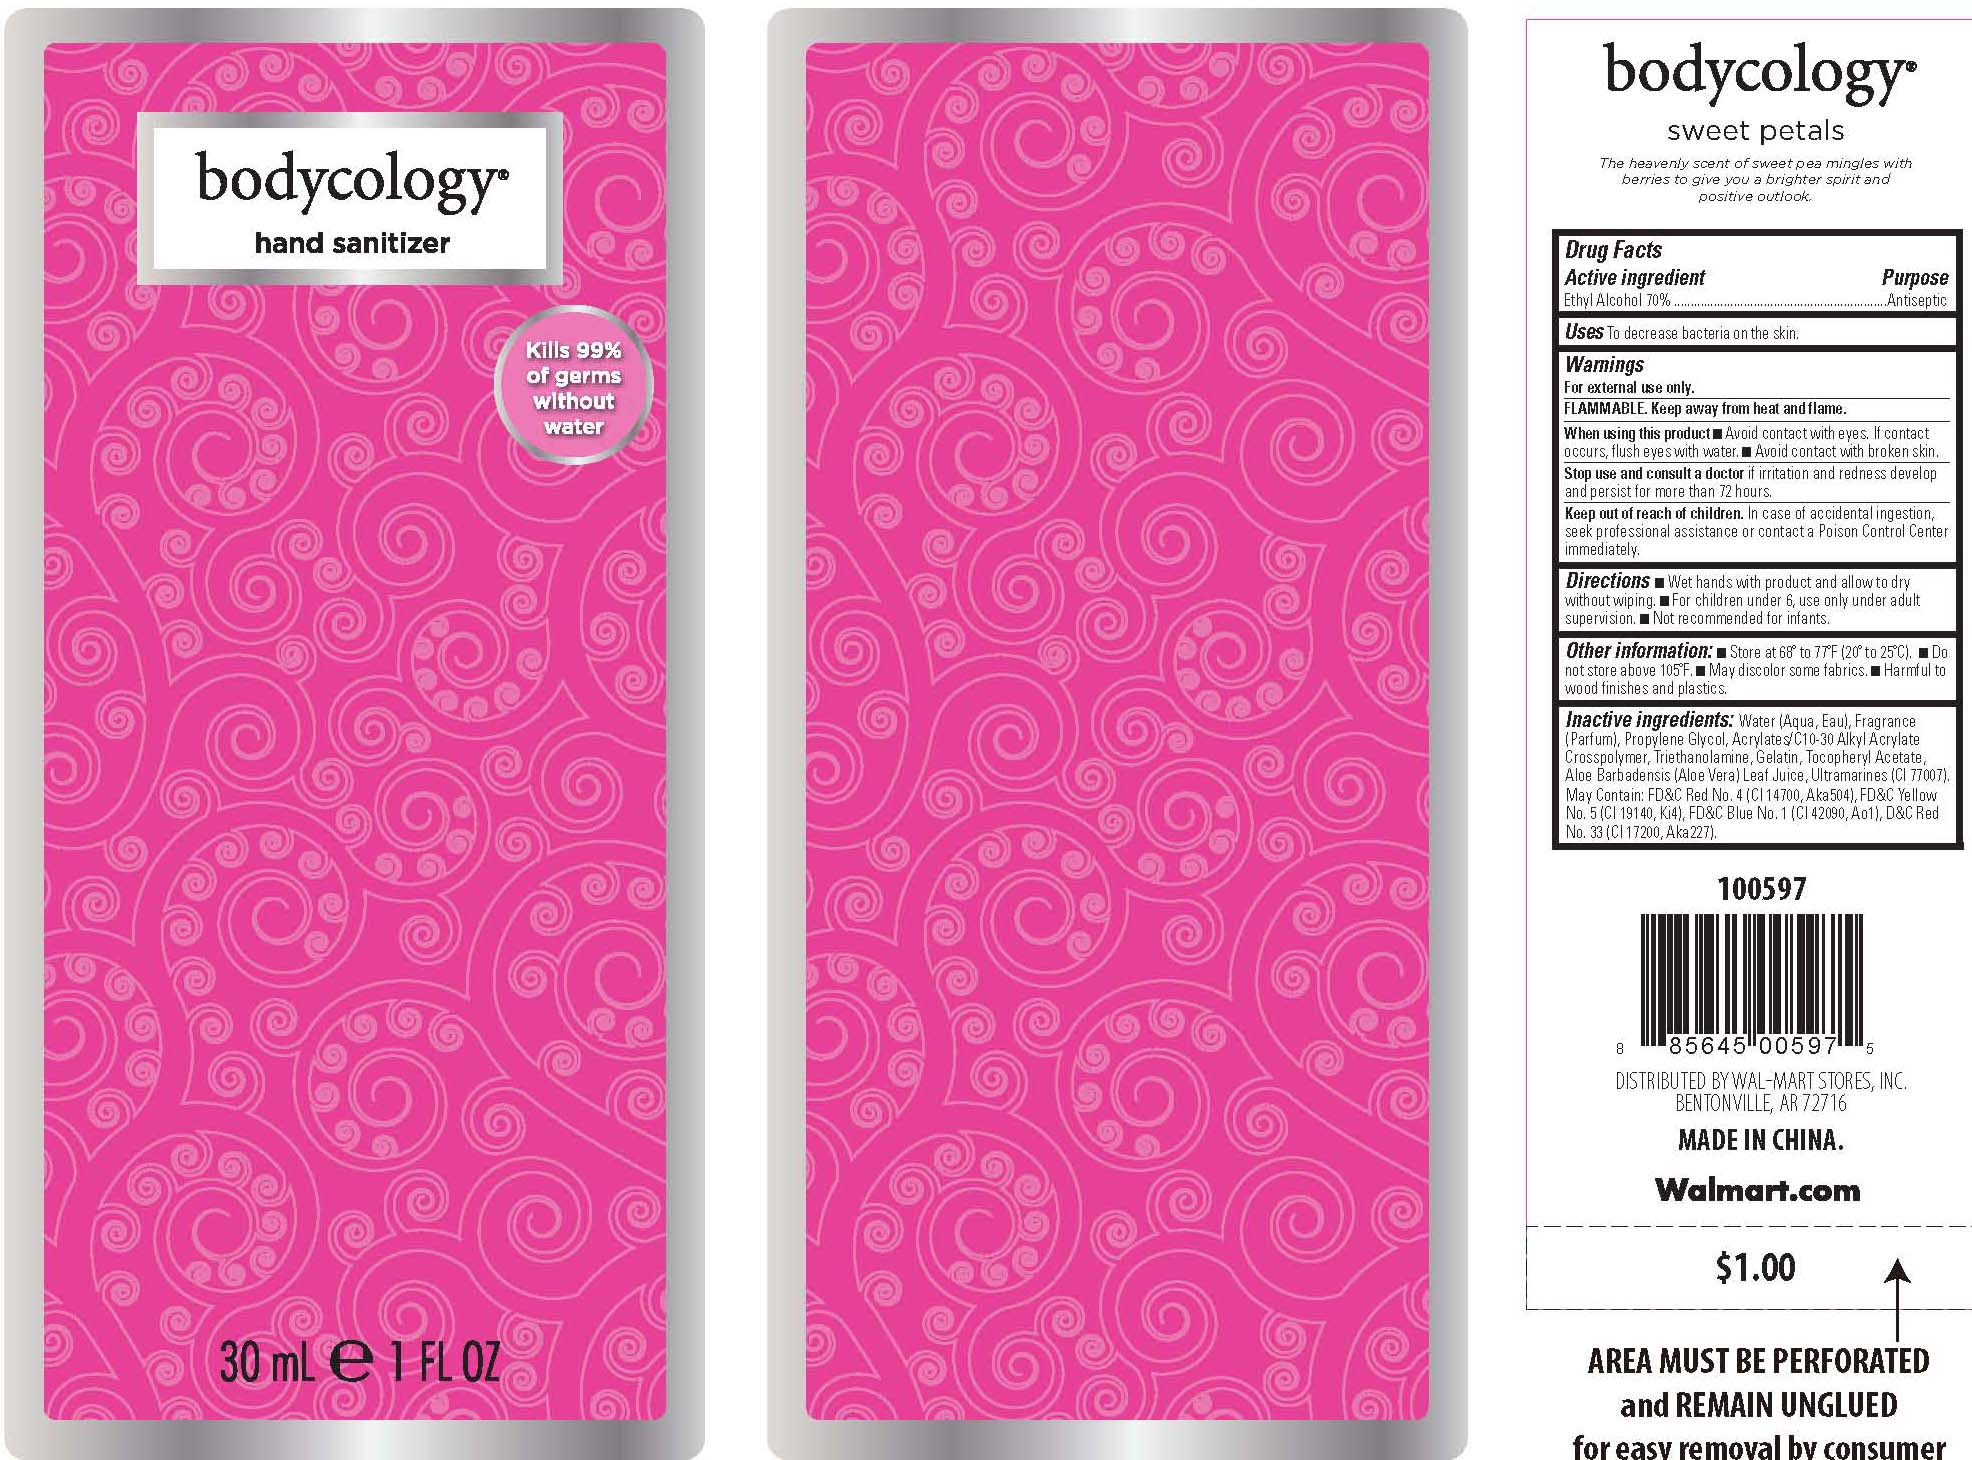 Bodycology Sweet Petals (Ethyl Alcohol) Gel [Wal-mart Stores, Inc.]